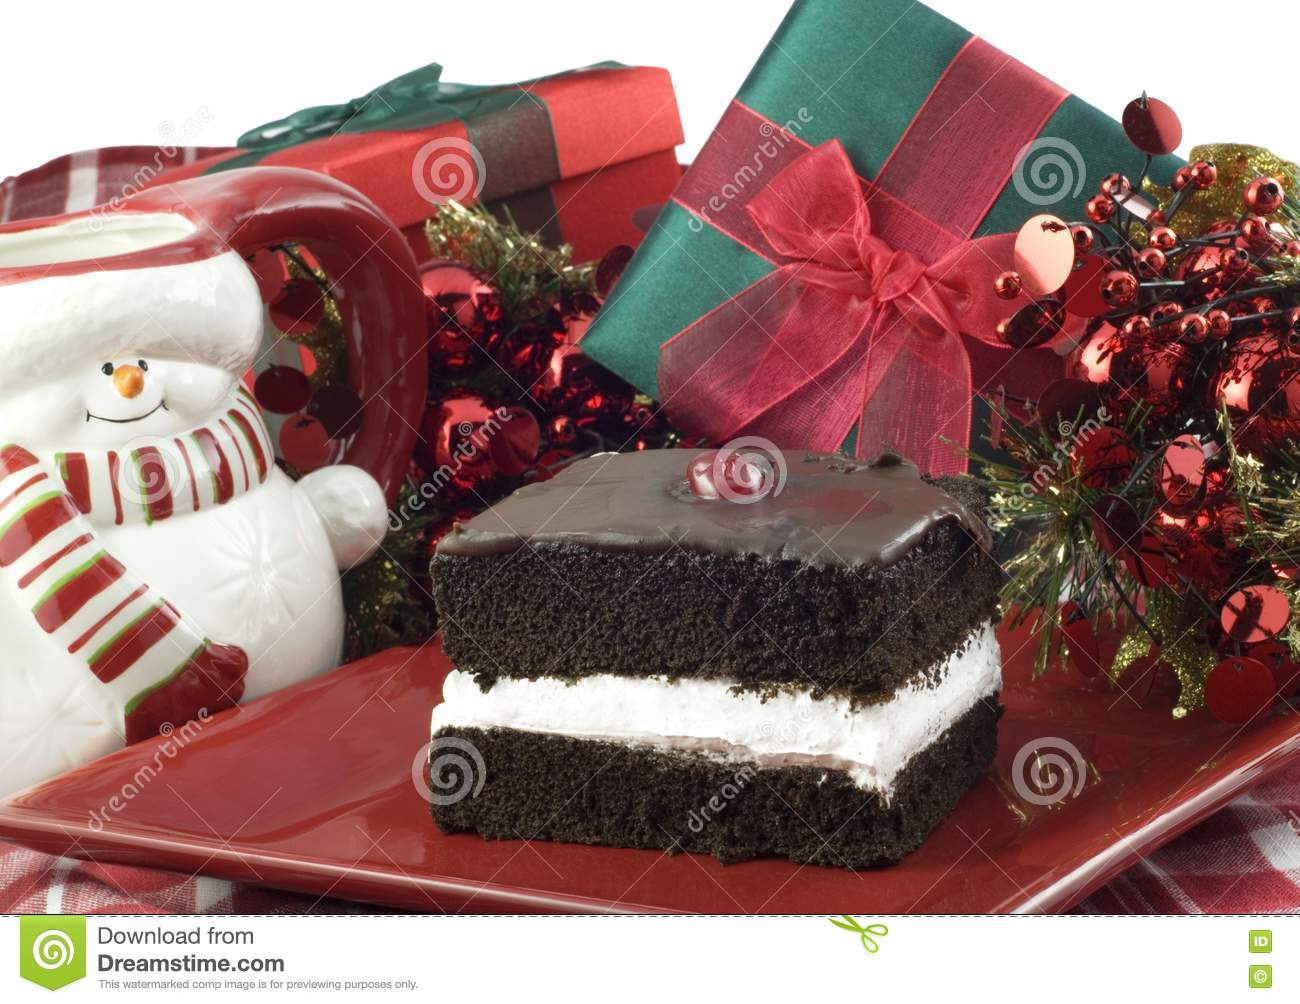 Chocolate Cake Decorated For Christmas : Chocolate Layer Cake With Christmas Decorations Royalty ...